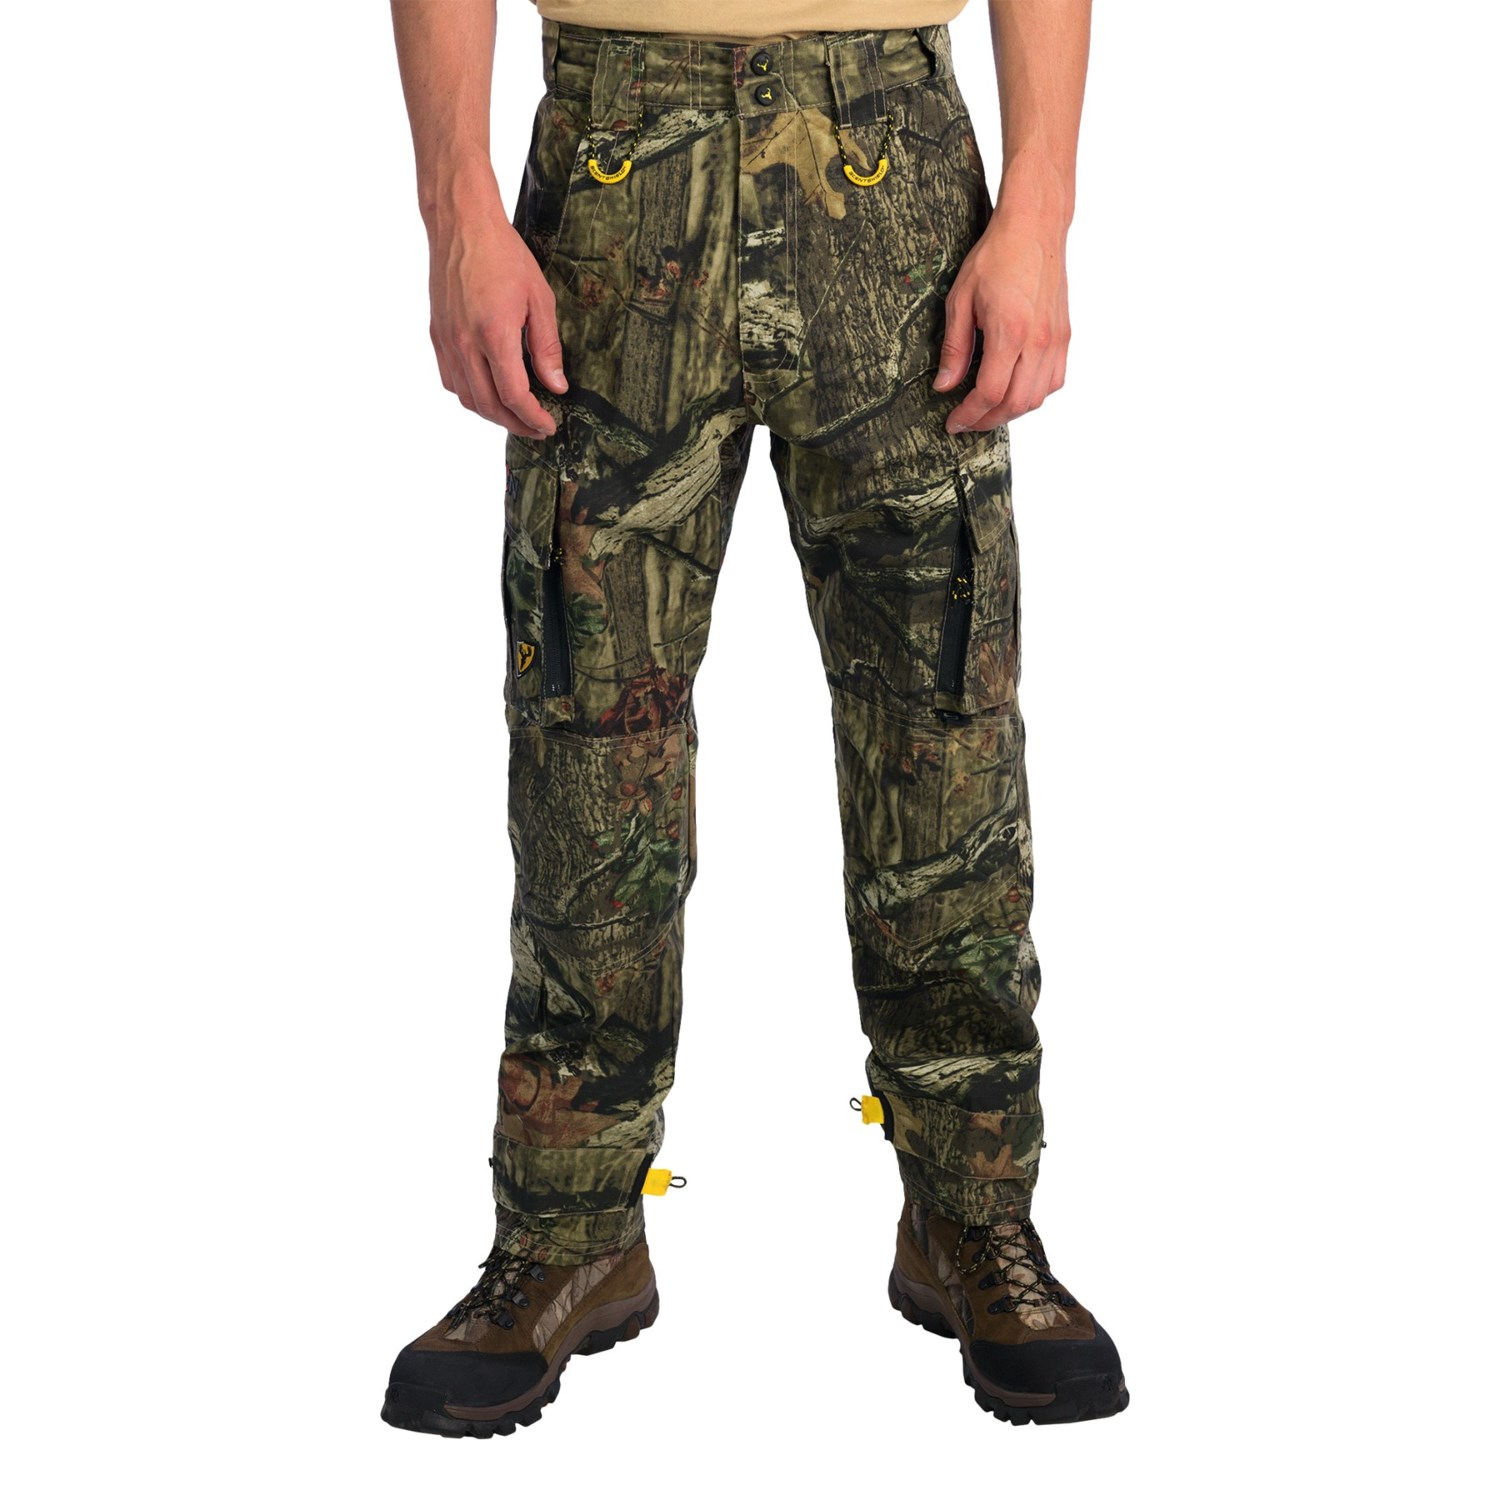 Scentblocker Recon Hunting Pants For Men Save 33